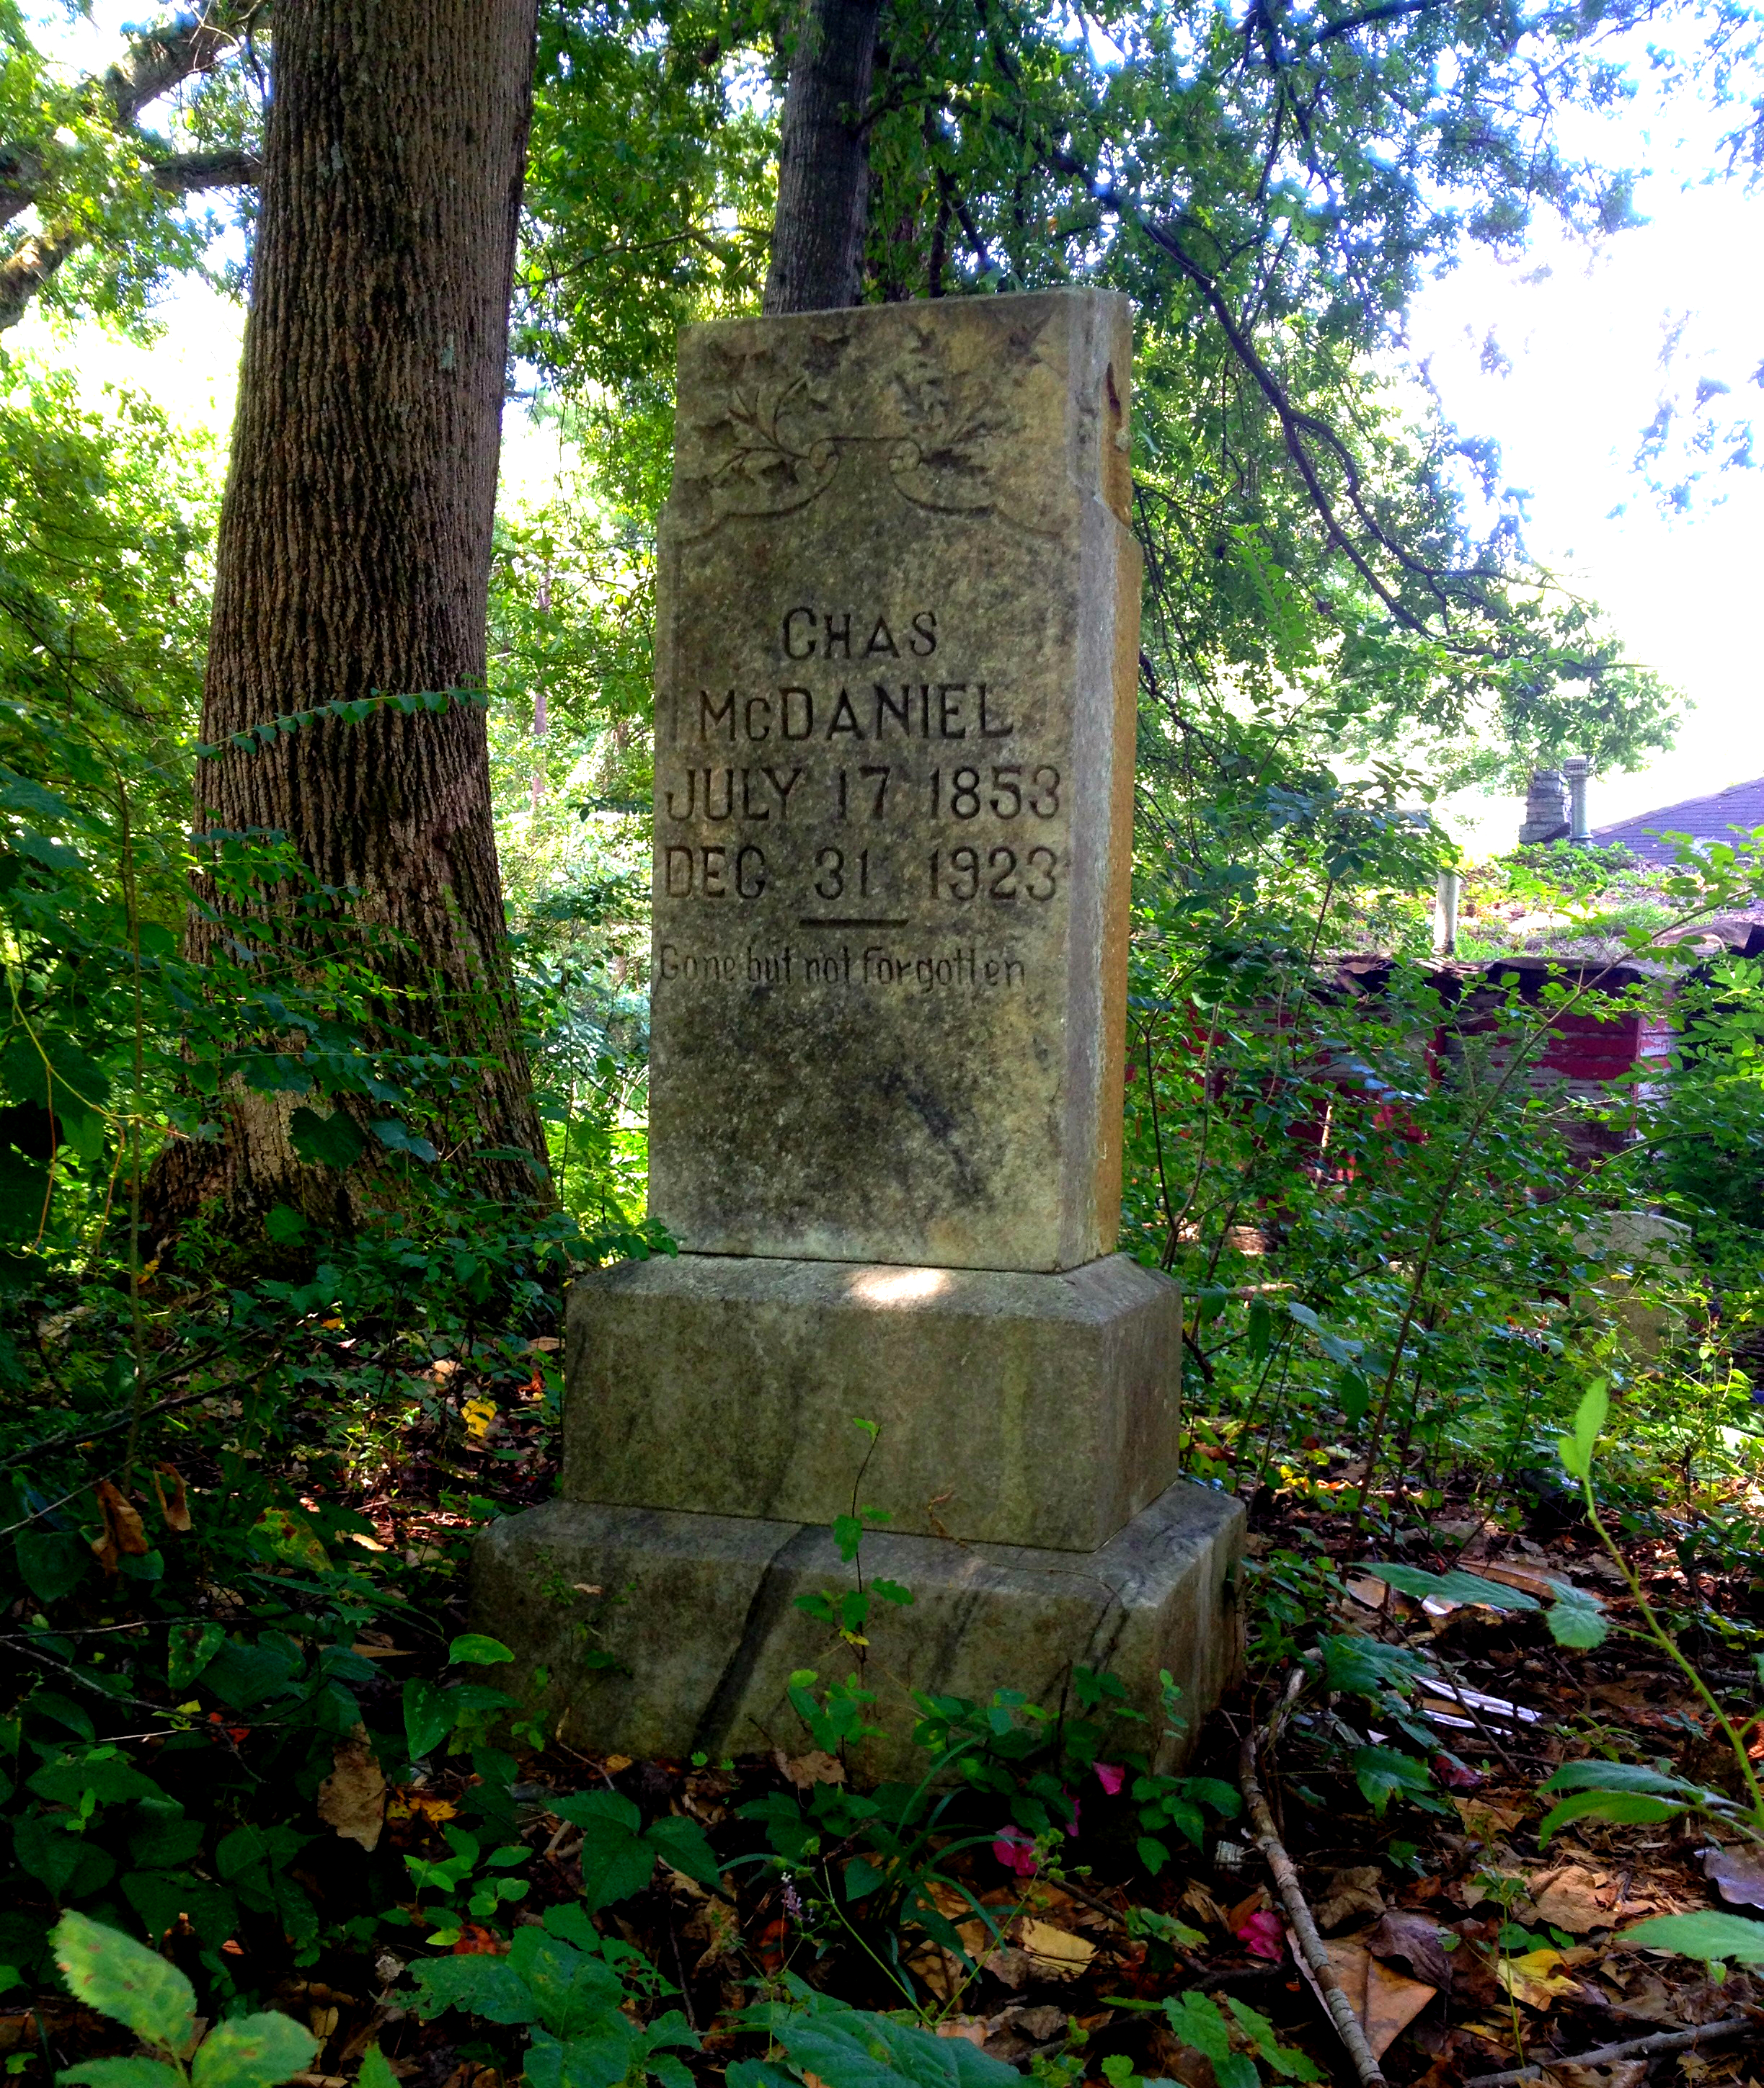 Chas McDaniel Died December 31st, 1923 - Thomasville Cemetery - History Atlanta 2014